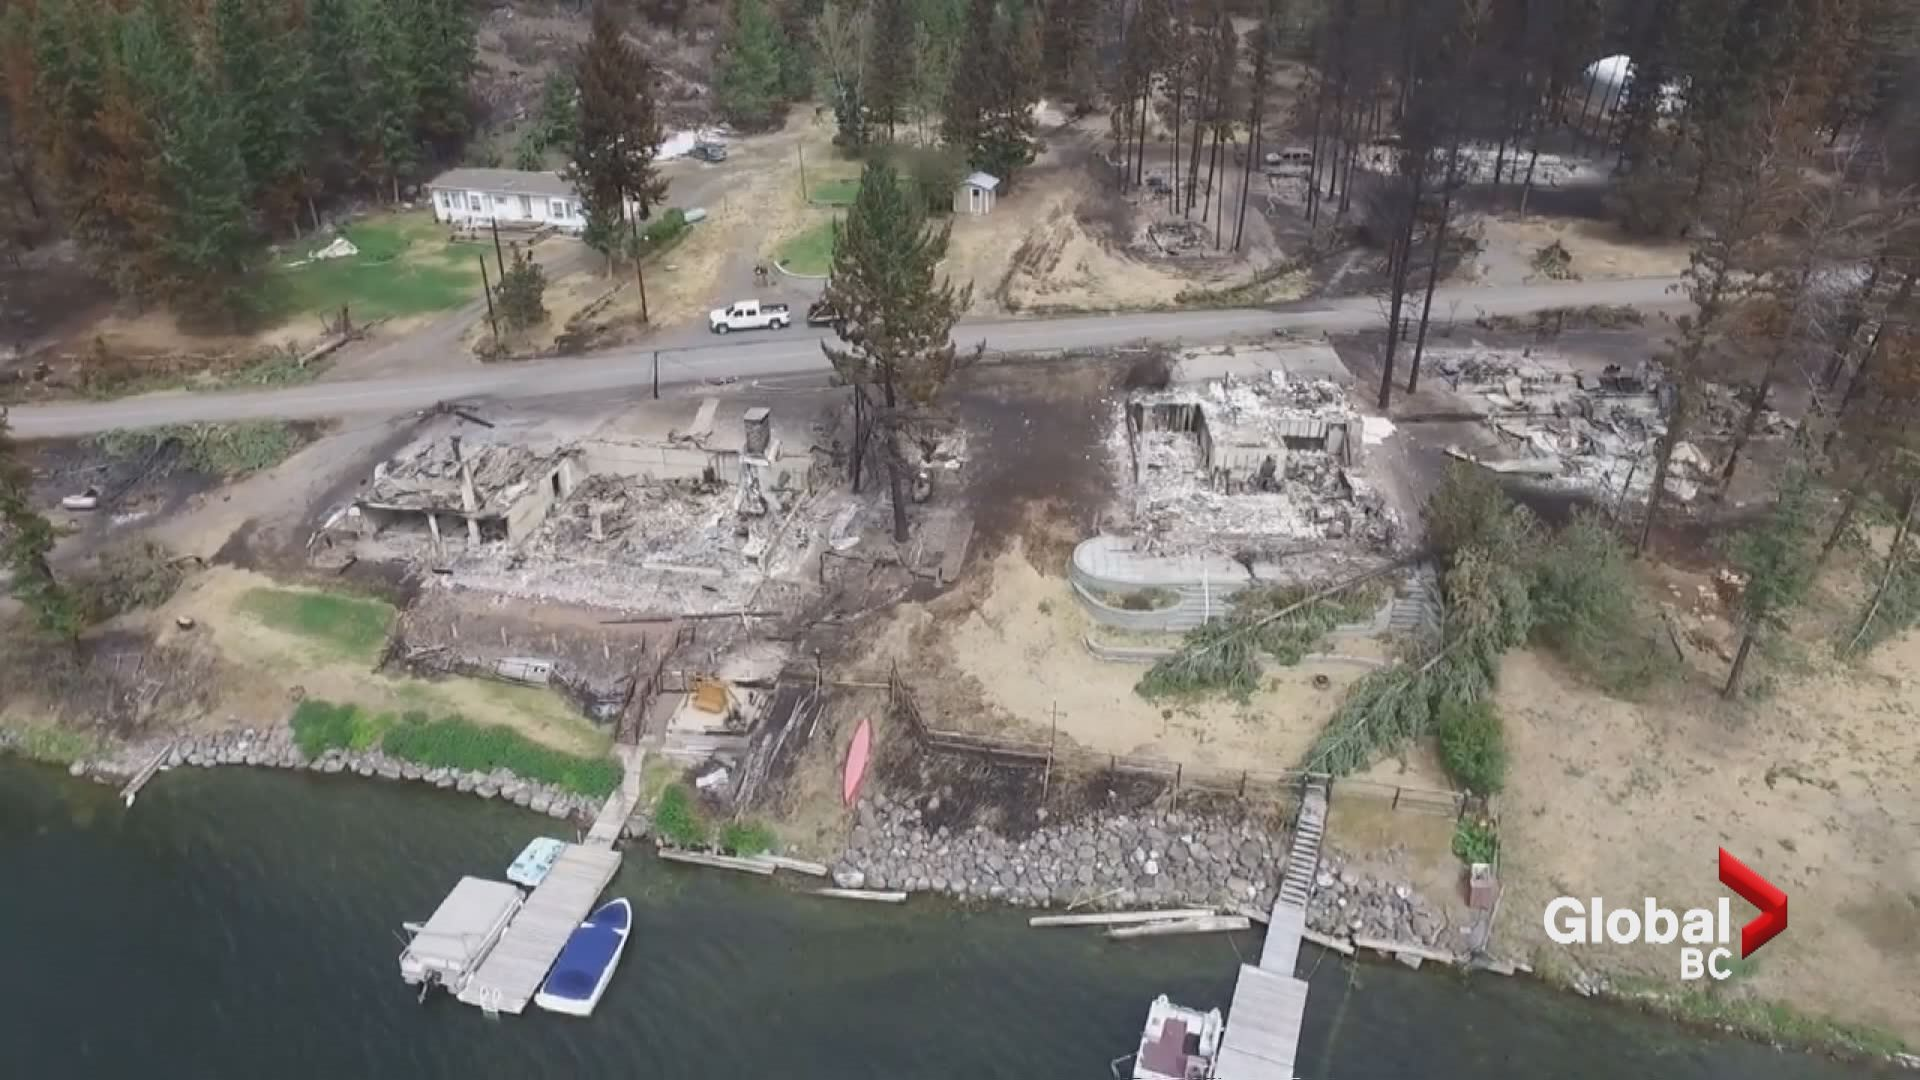 Drone footage shows wildfire devastation around Loon Lake